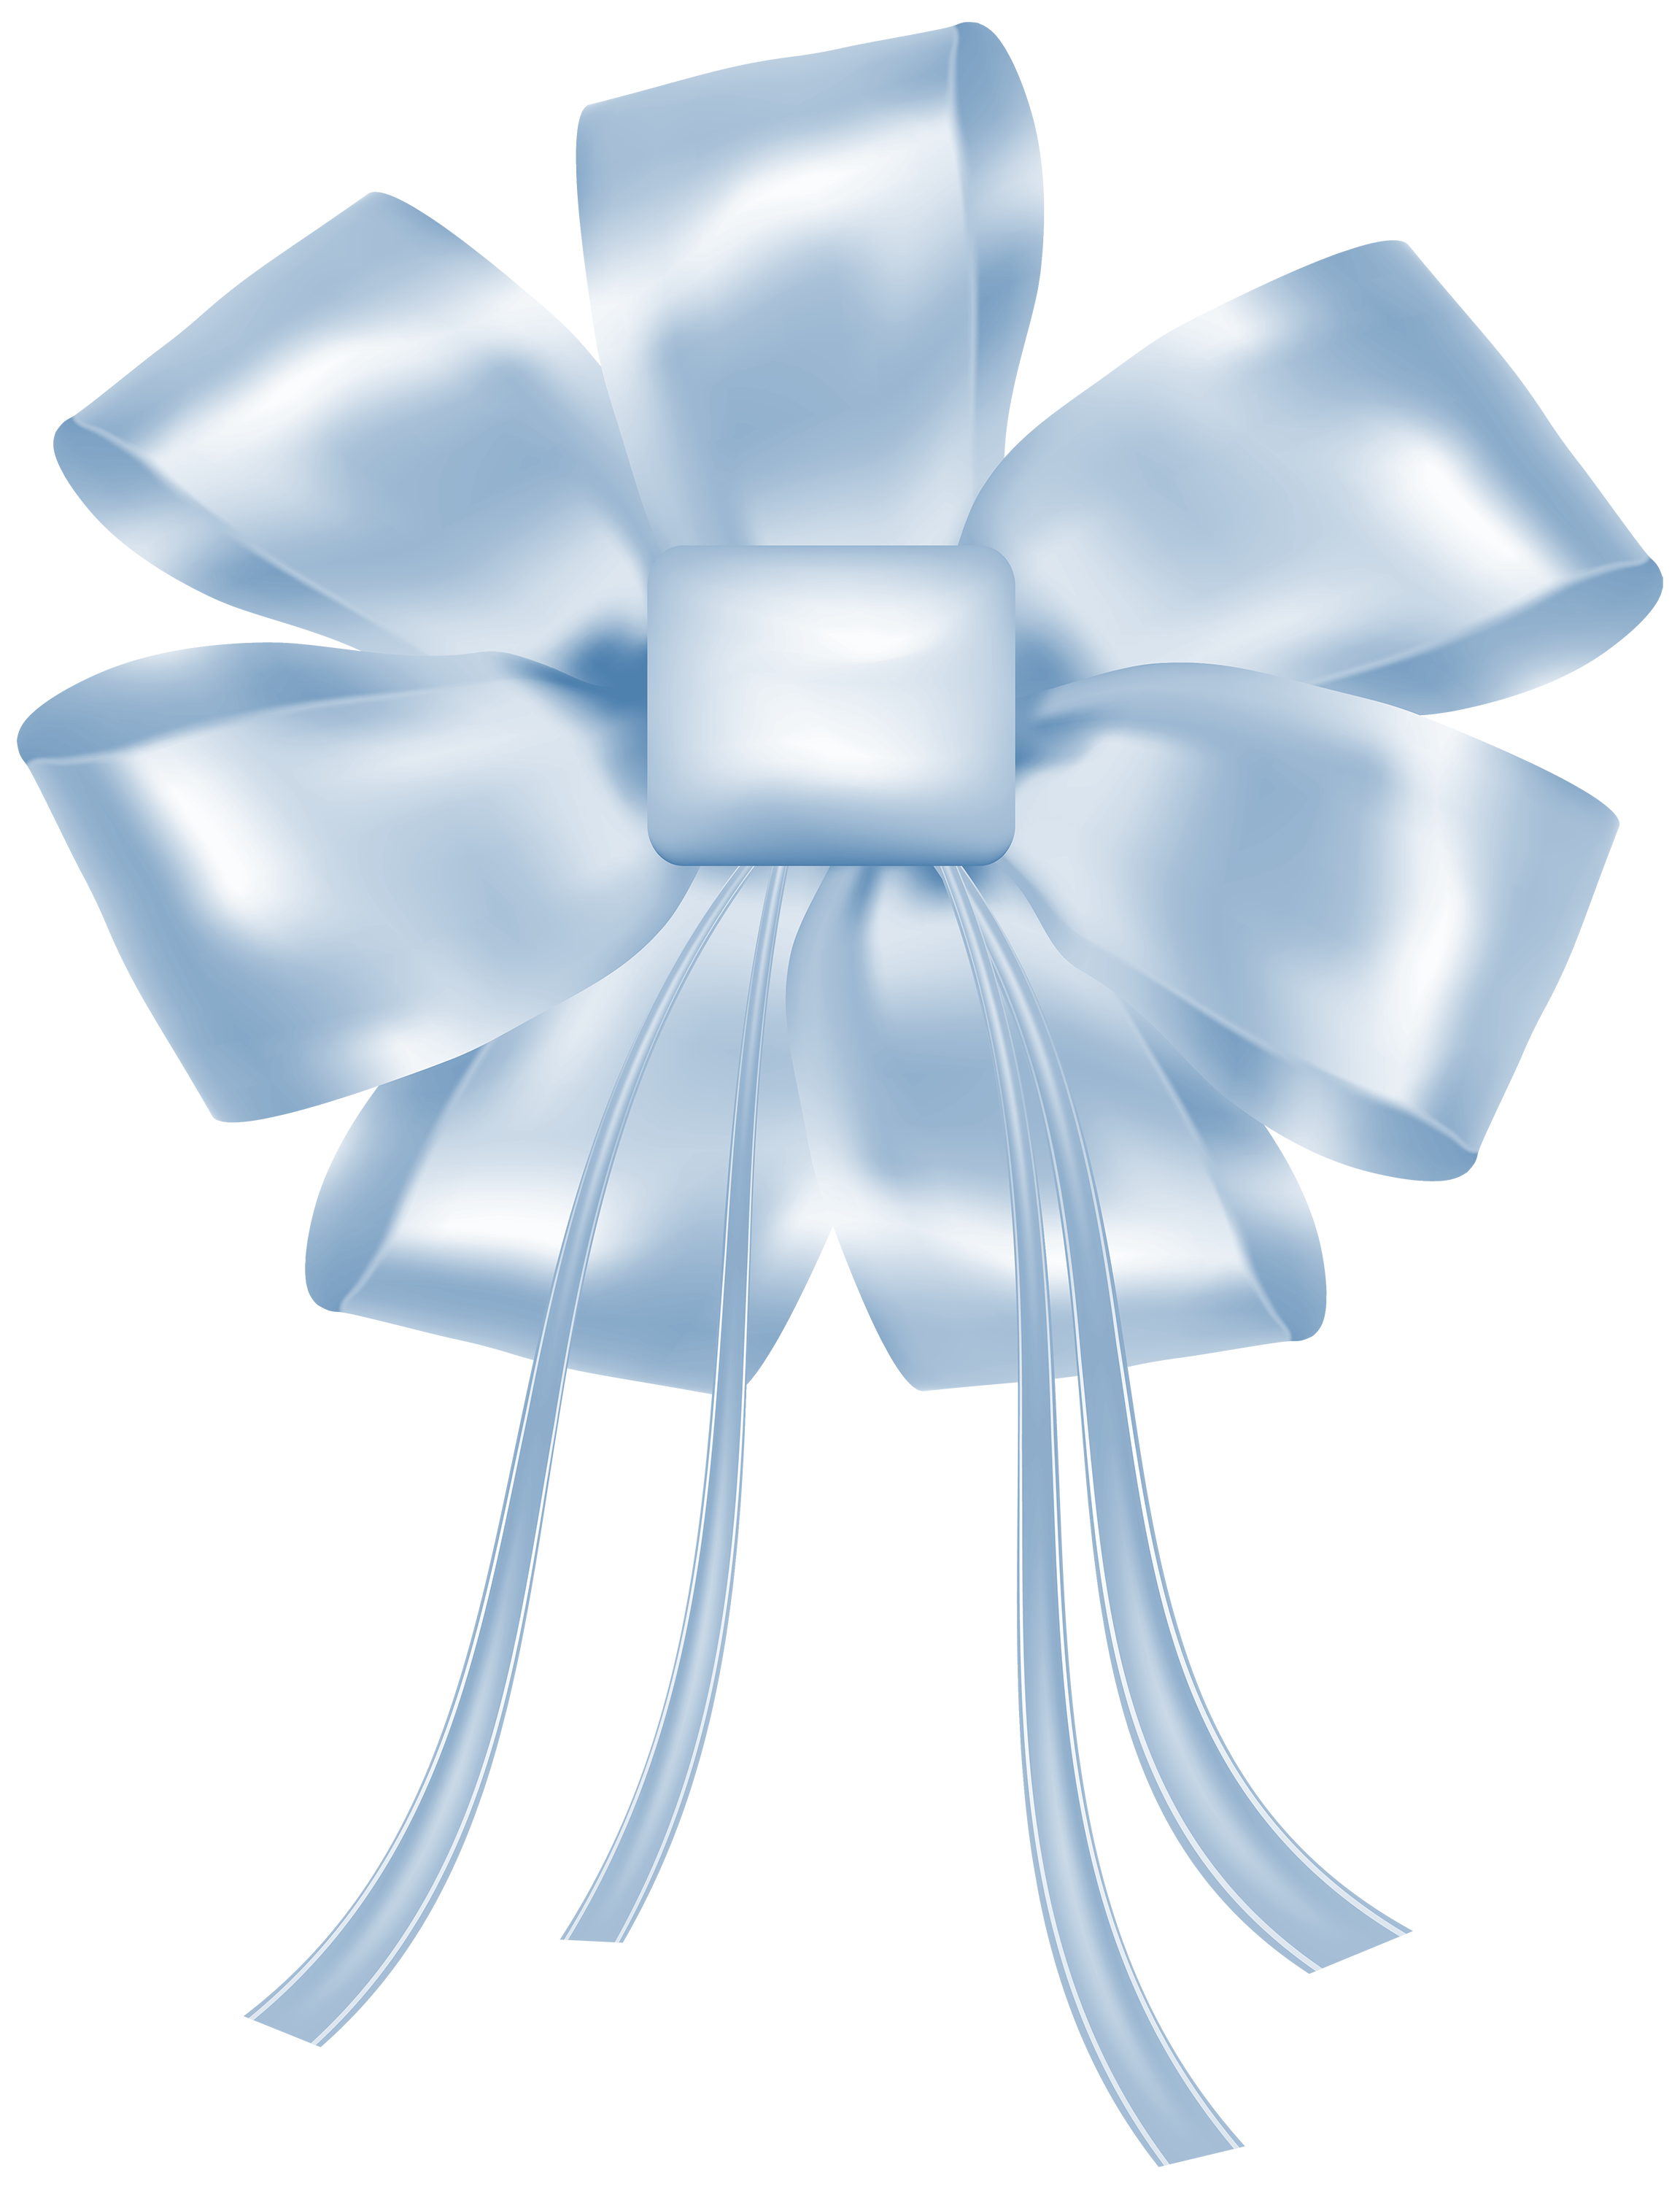 Bows clipart wedding. Light blue bow png